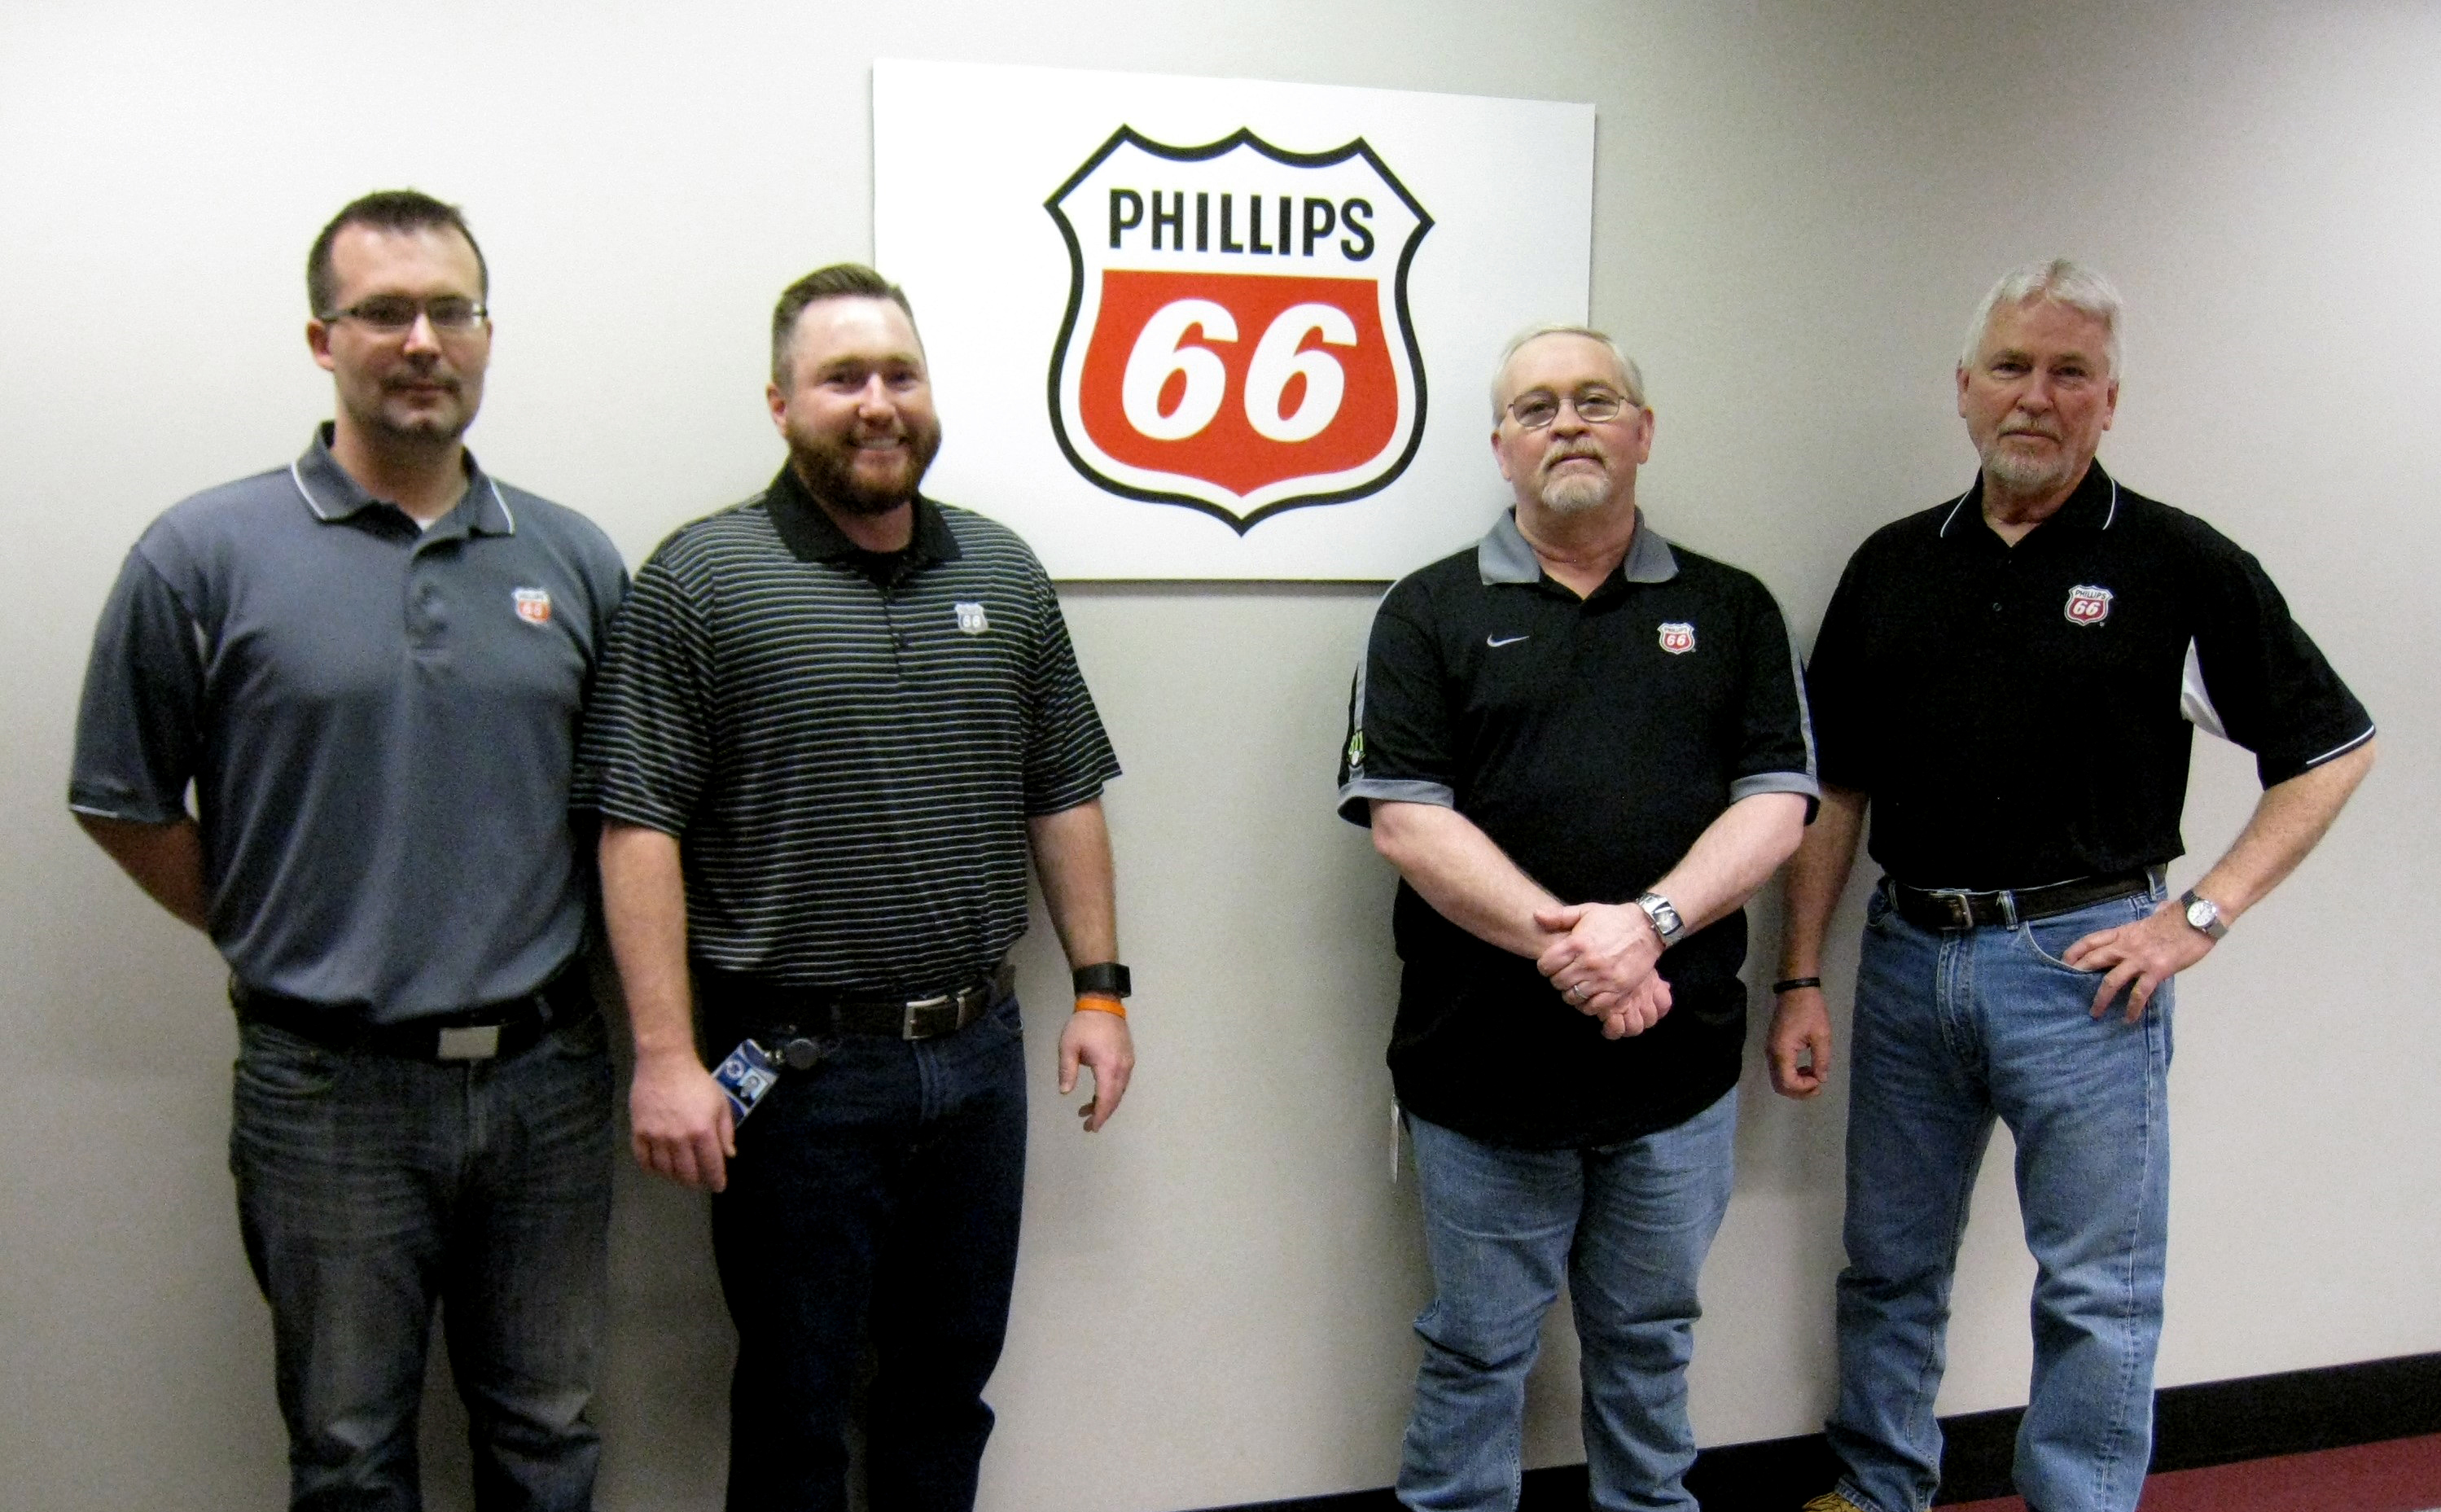 Phillips 66 One-Call Team Processes 1MM Locates